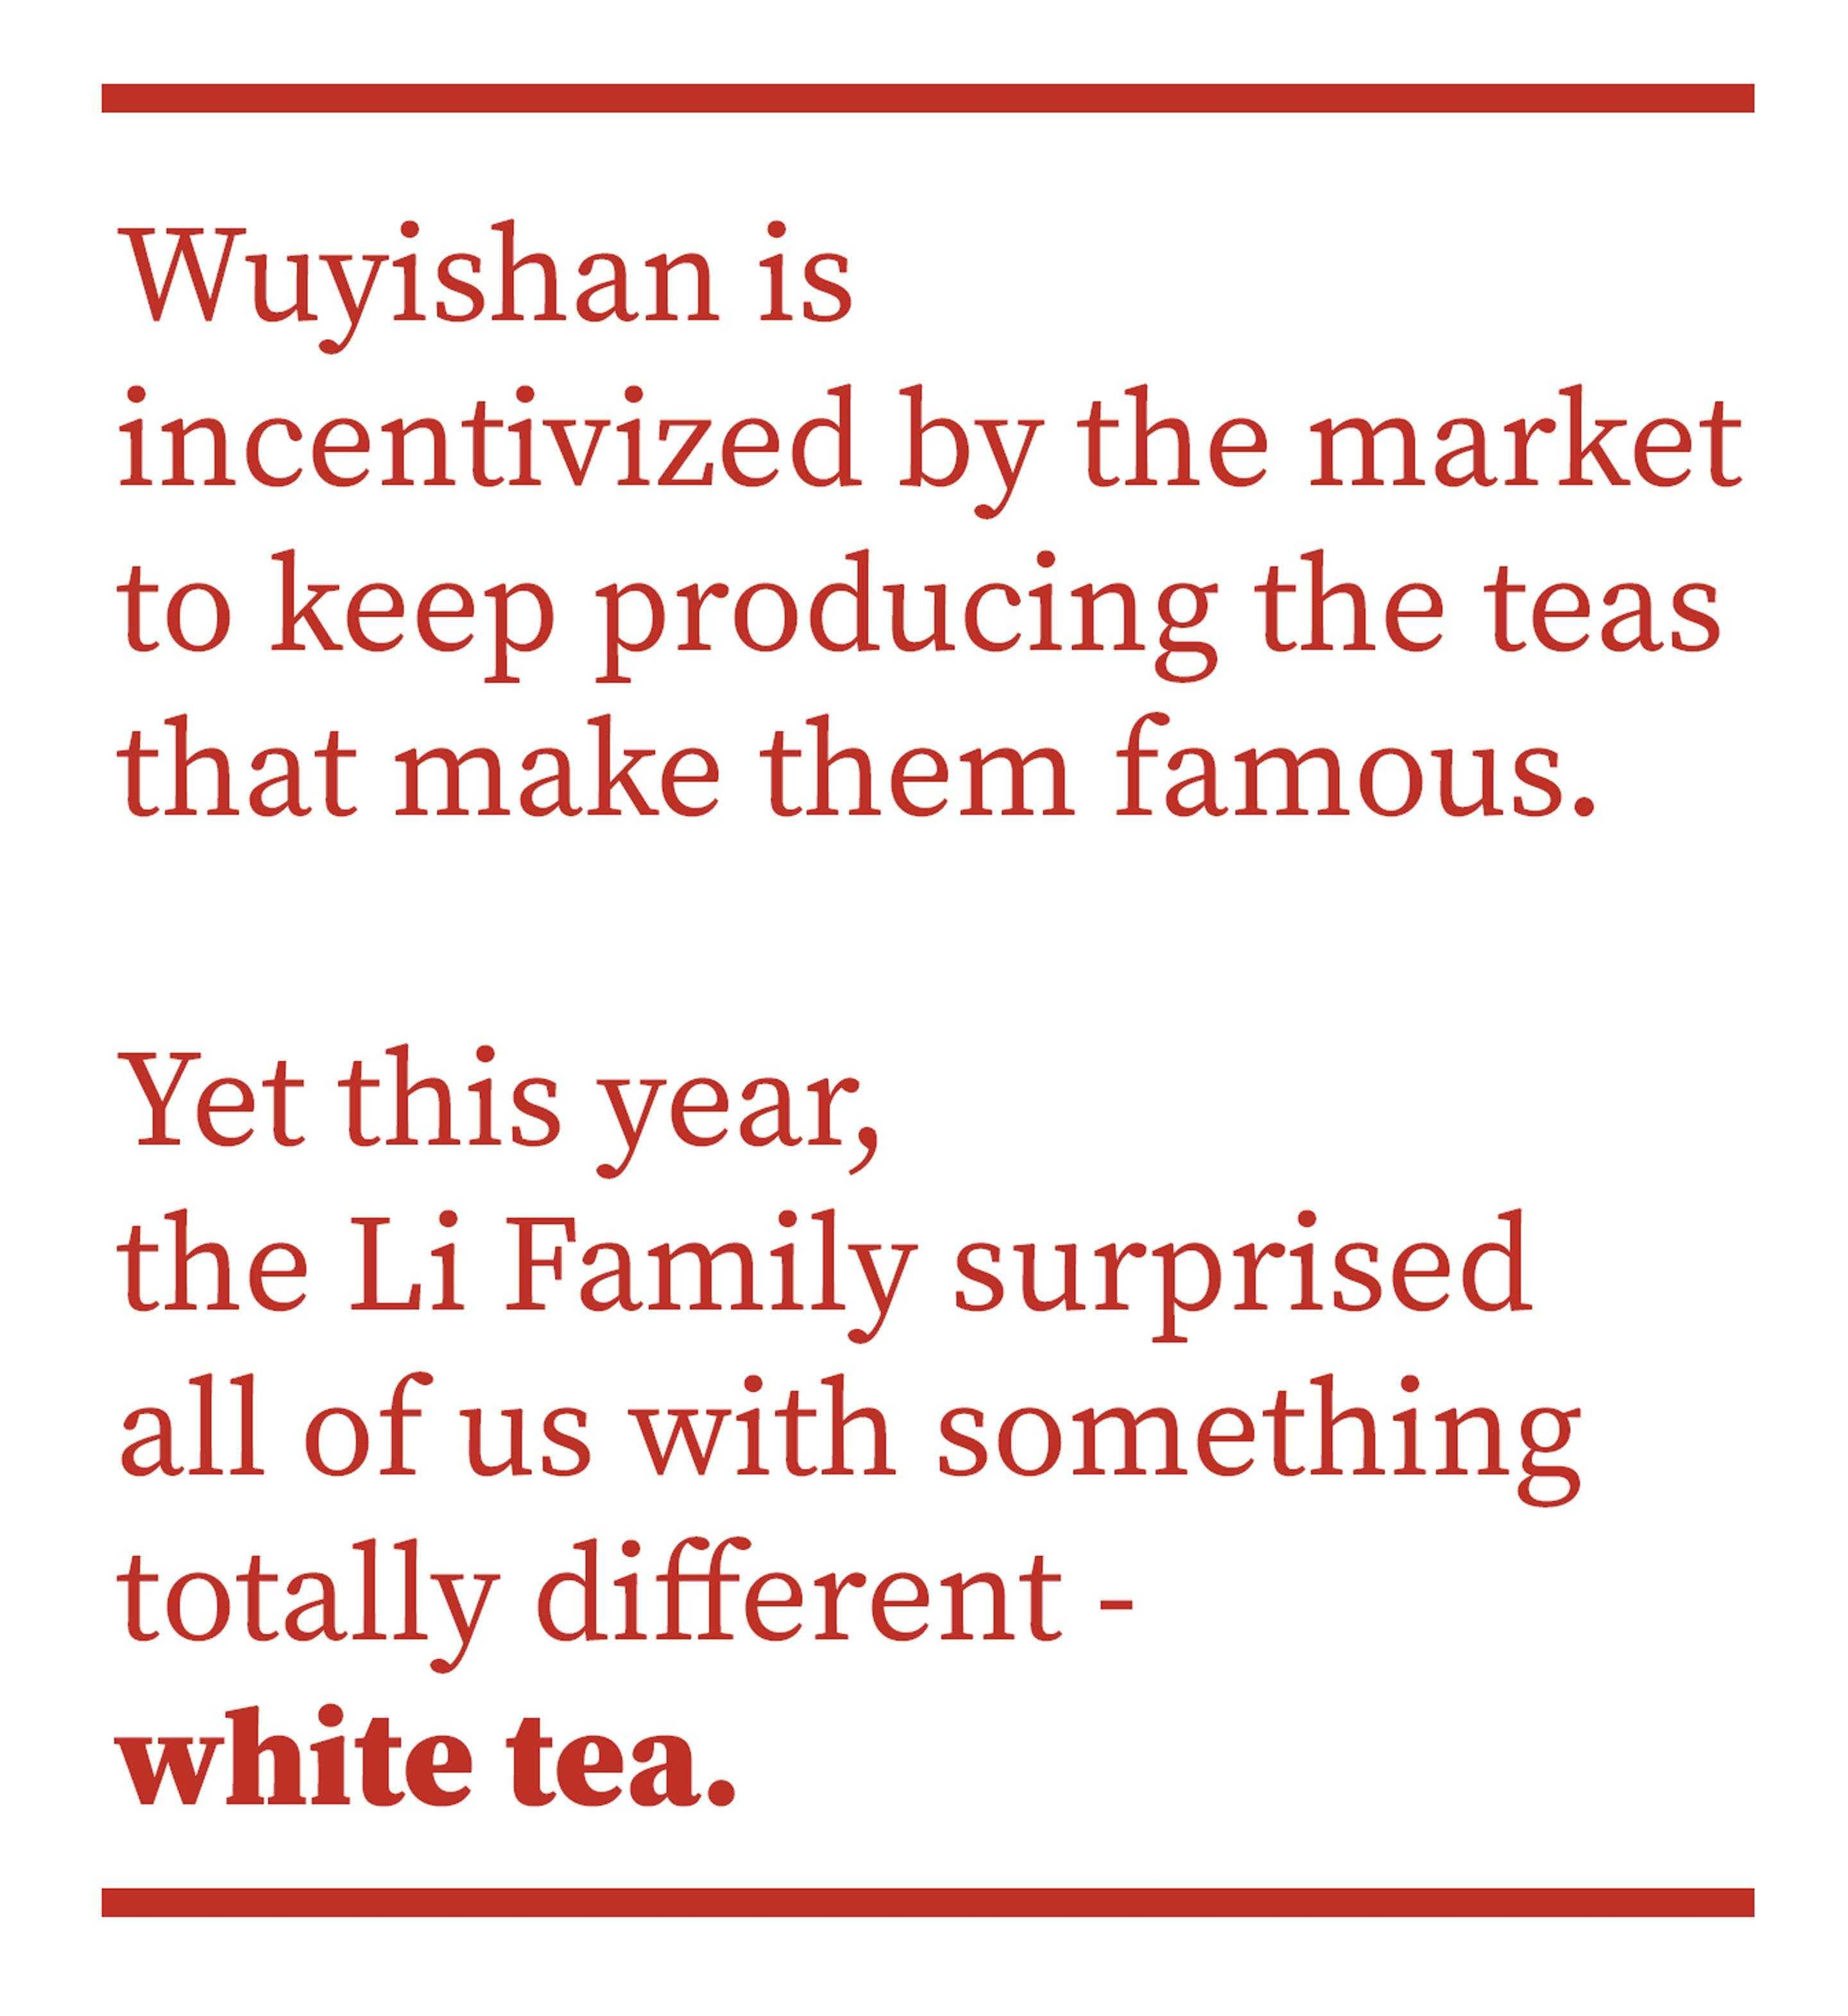 Wuyishan is incentivized by the market to keep producing the teas that make them famous. Yes this year, the Li Family surprised us with something totally different - white tea.